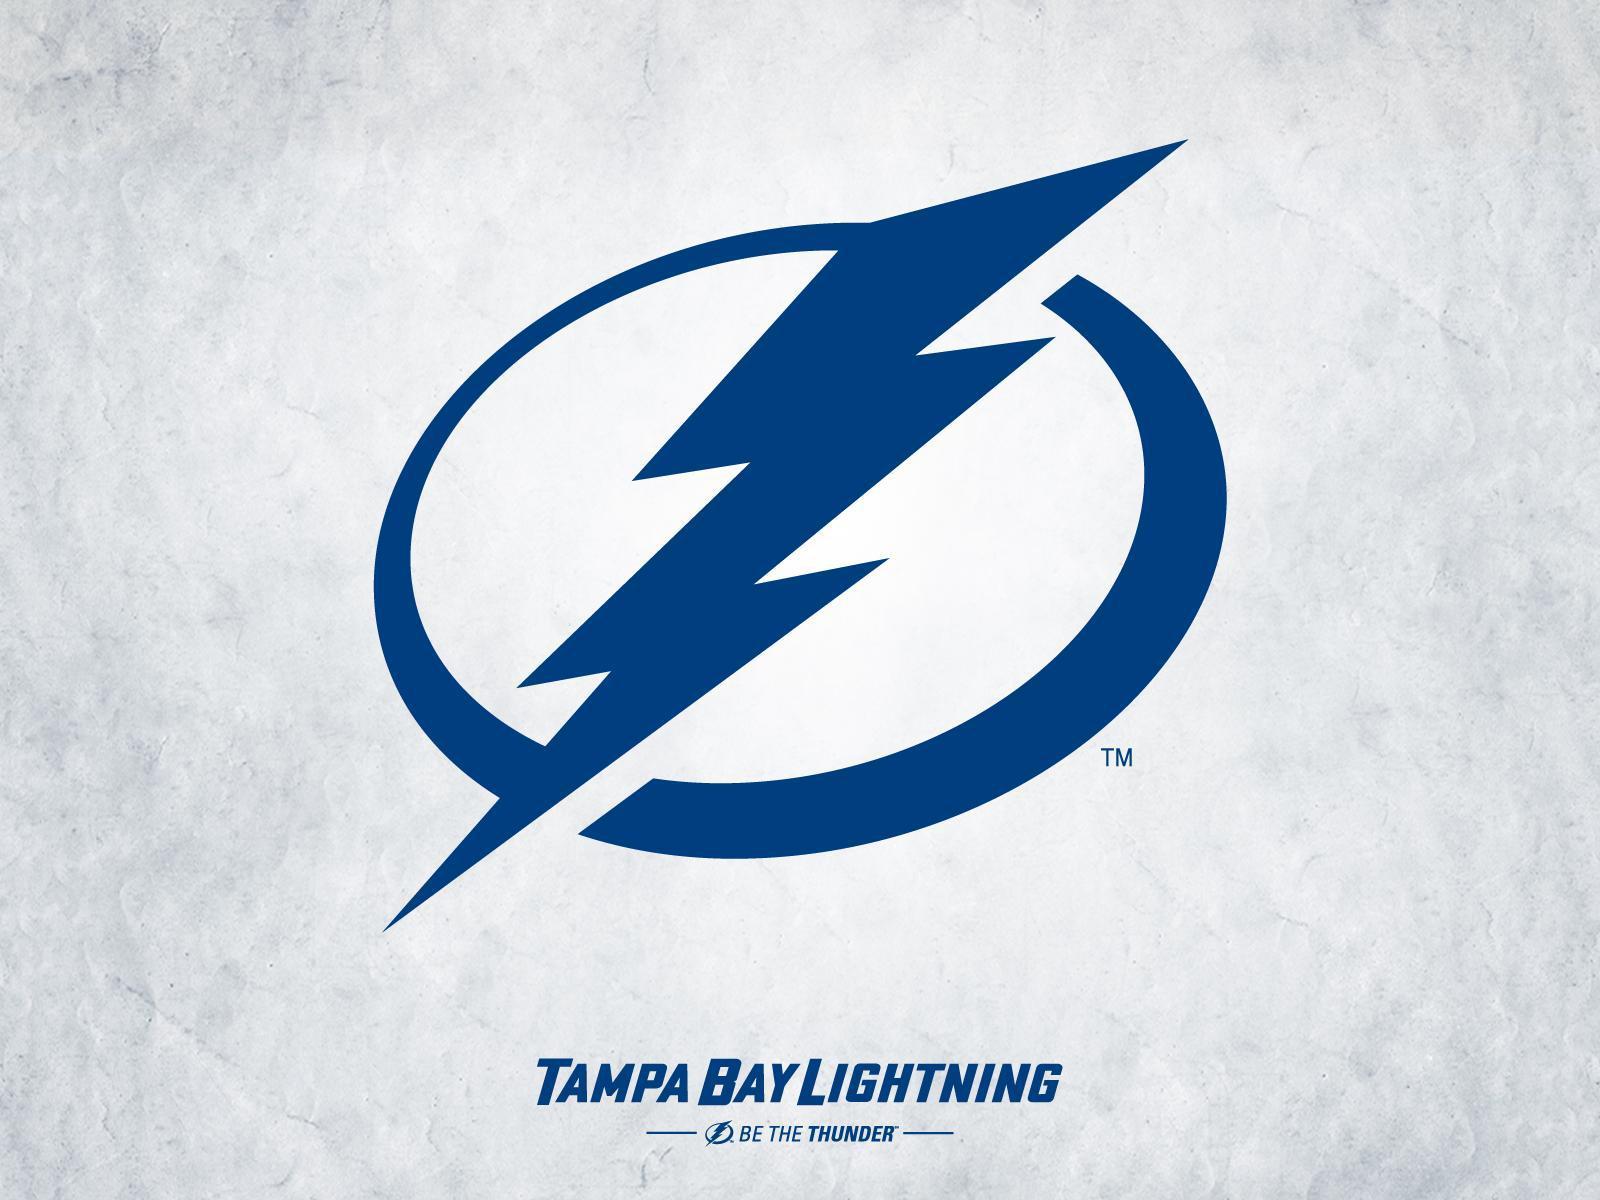 Tampa Bay Lightning Wallpaper Downloads   Wallpaper Downloads 1600x1200